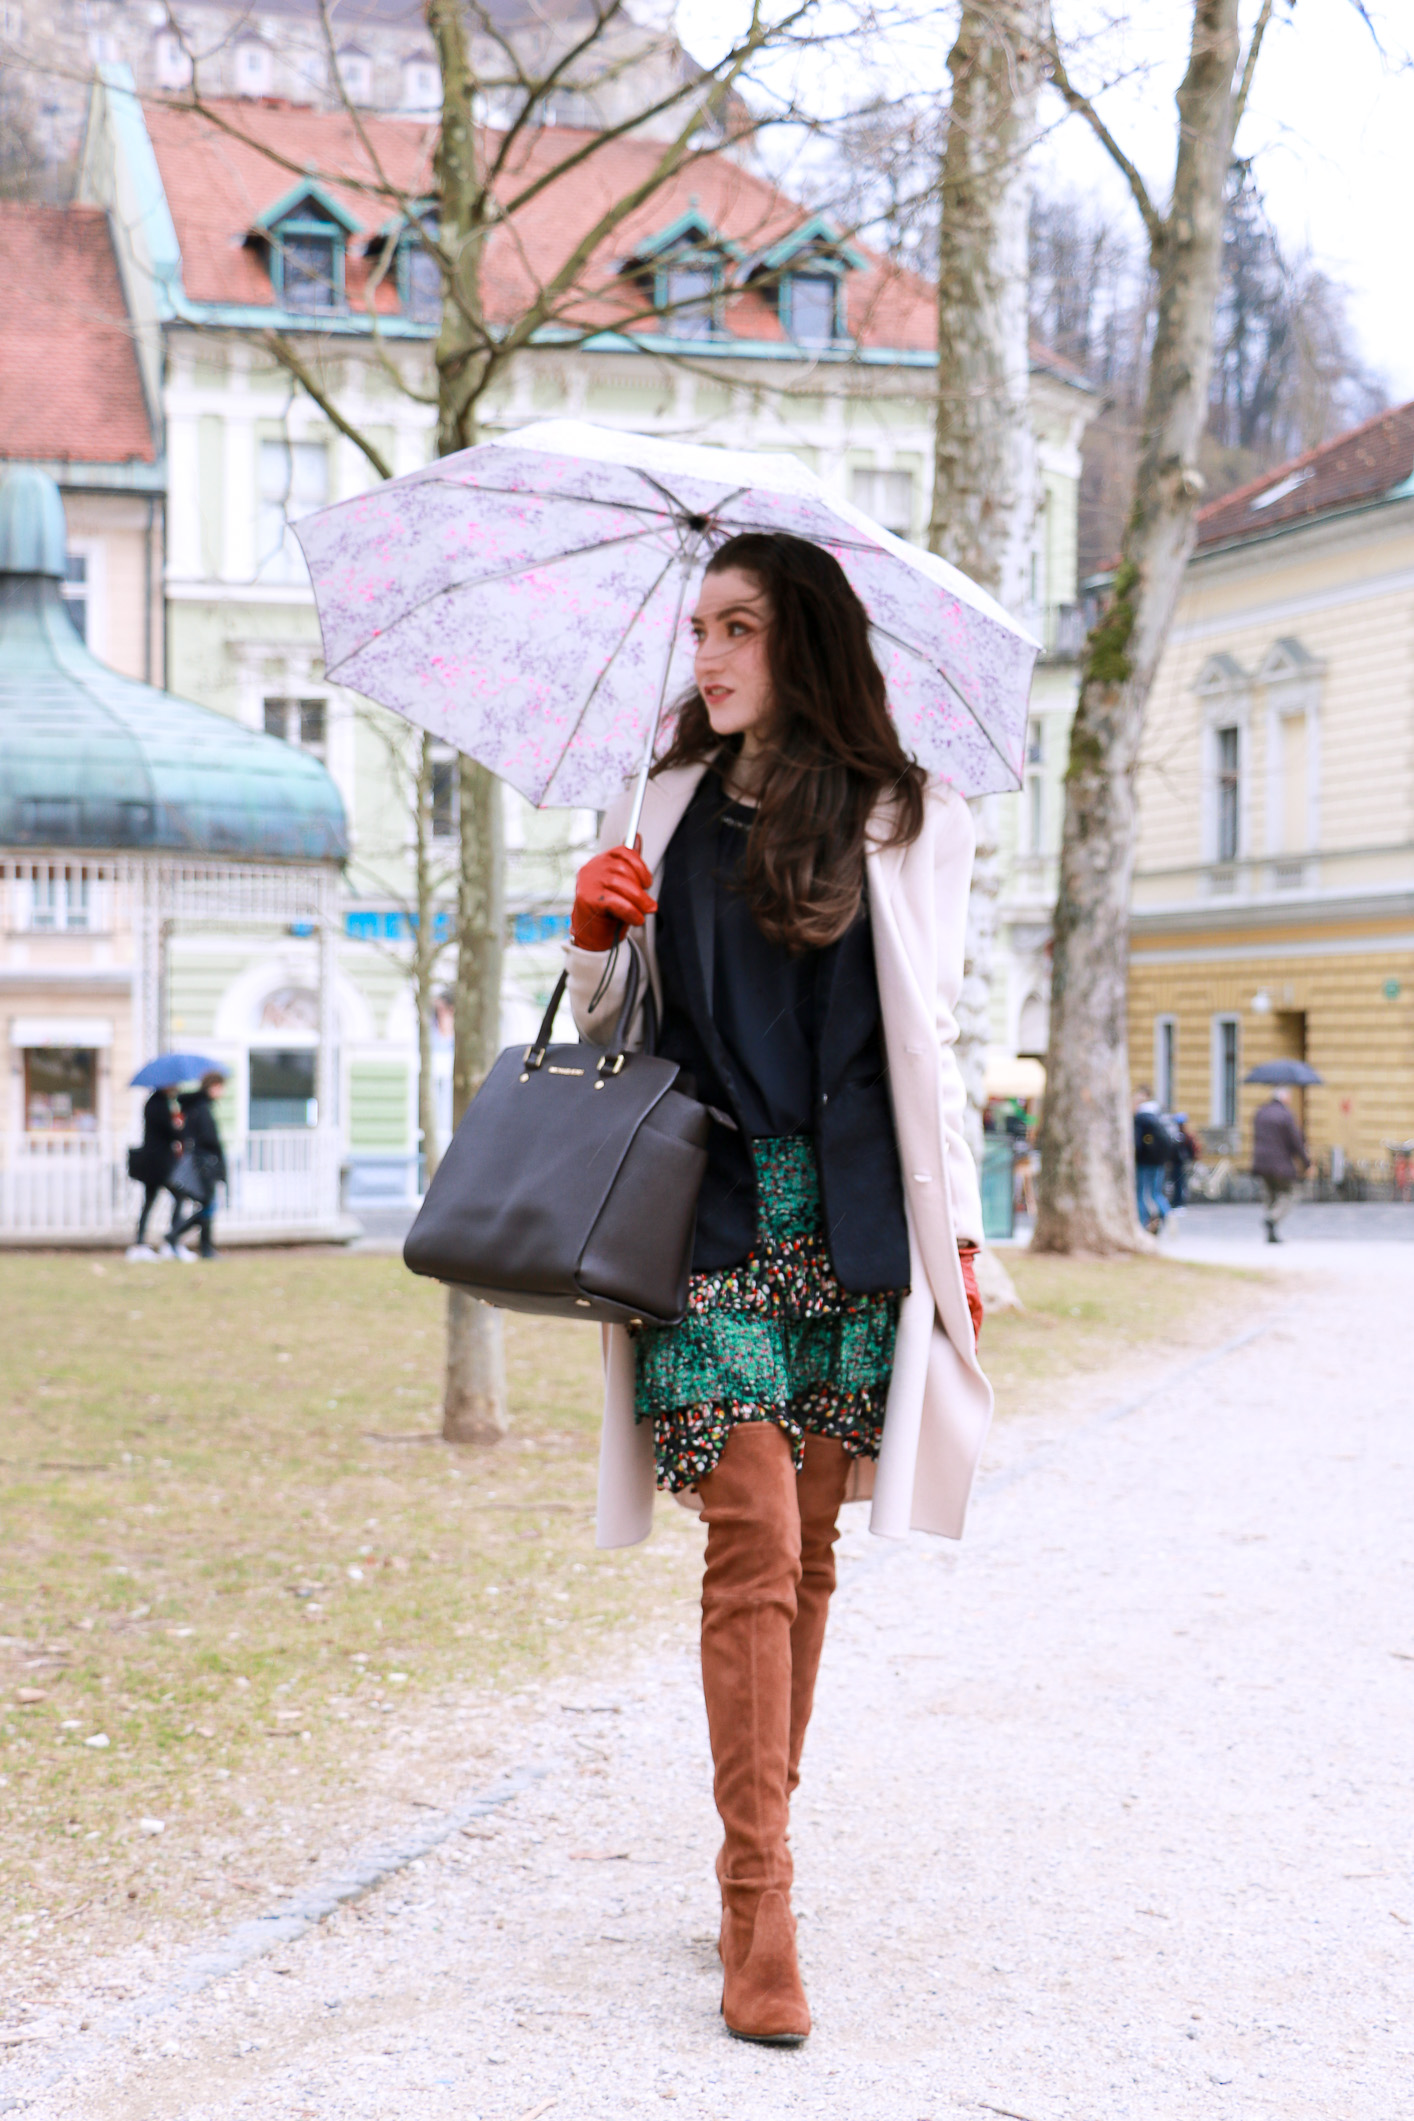 Fashion blogger Veronika Lipar of Brunette From Wall Street sharing how to wear bohemian skirt with ruffles in the city